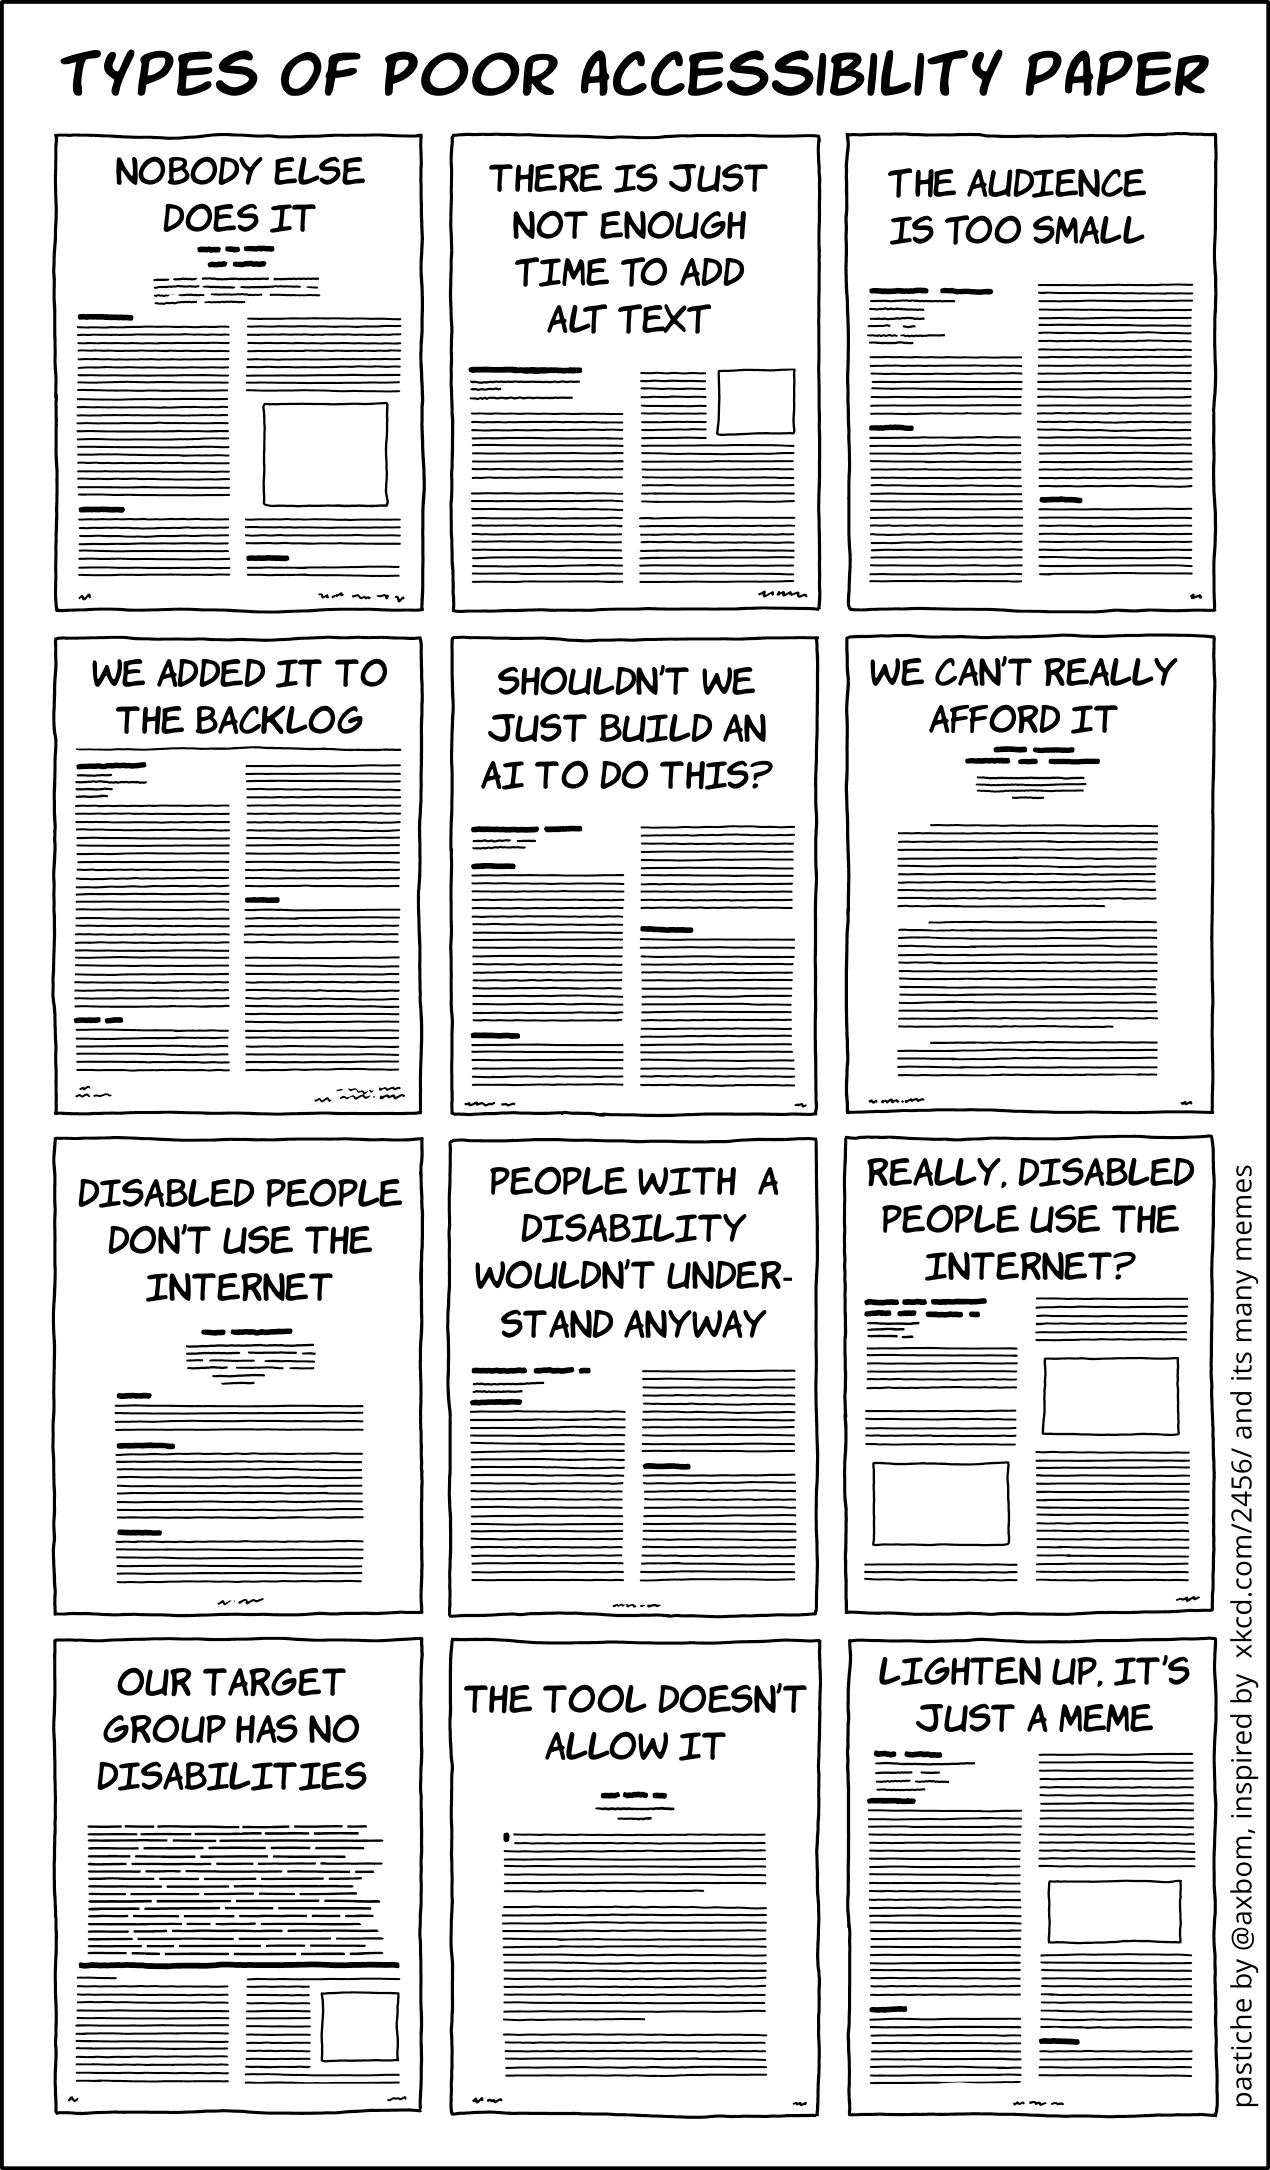 Types of Poor Accessibility Paper. Image described in post below.